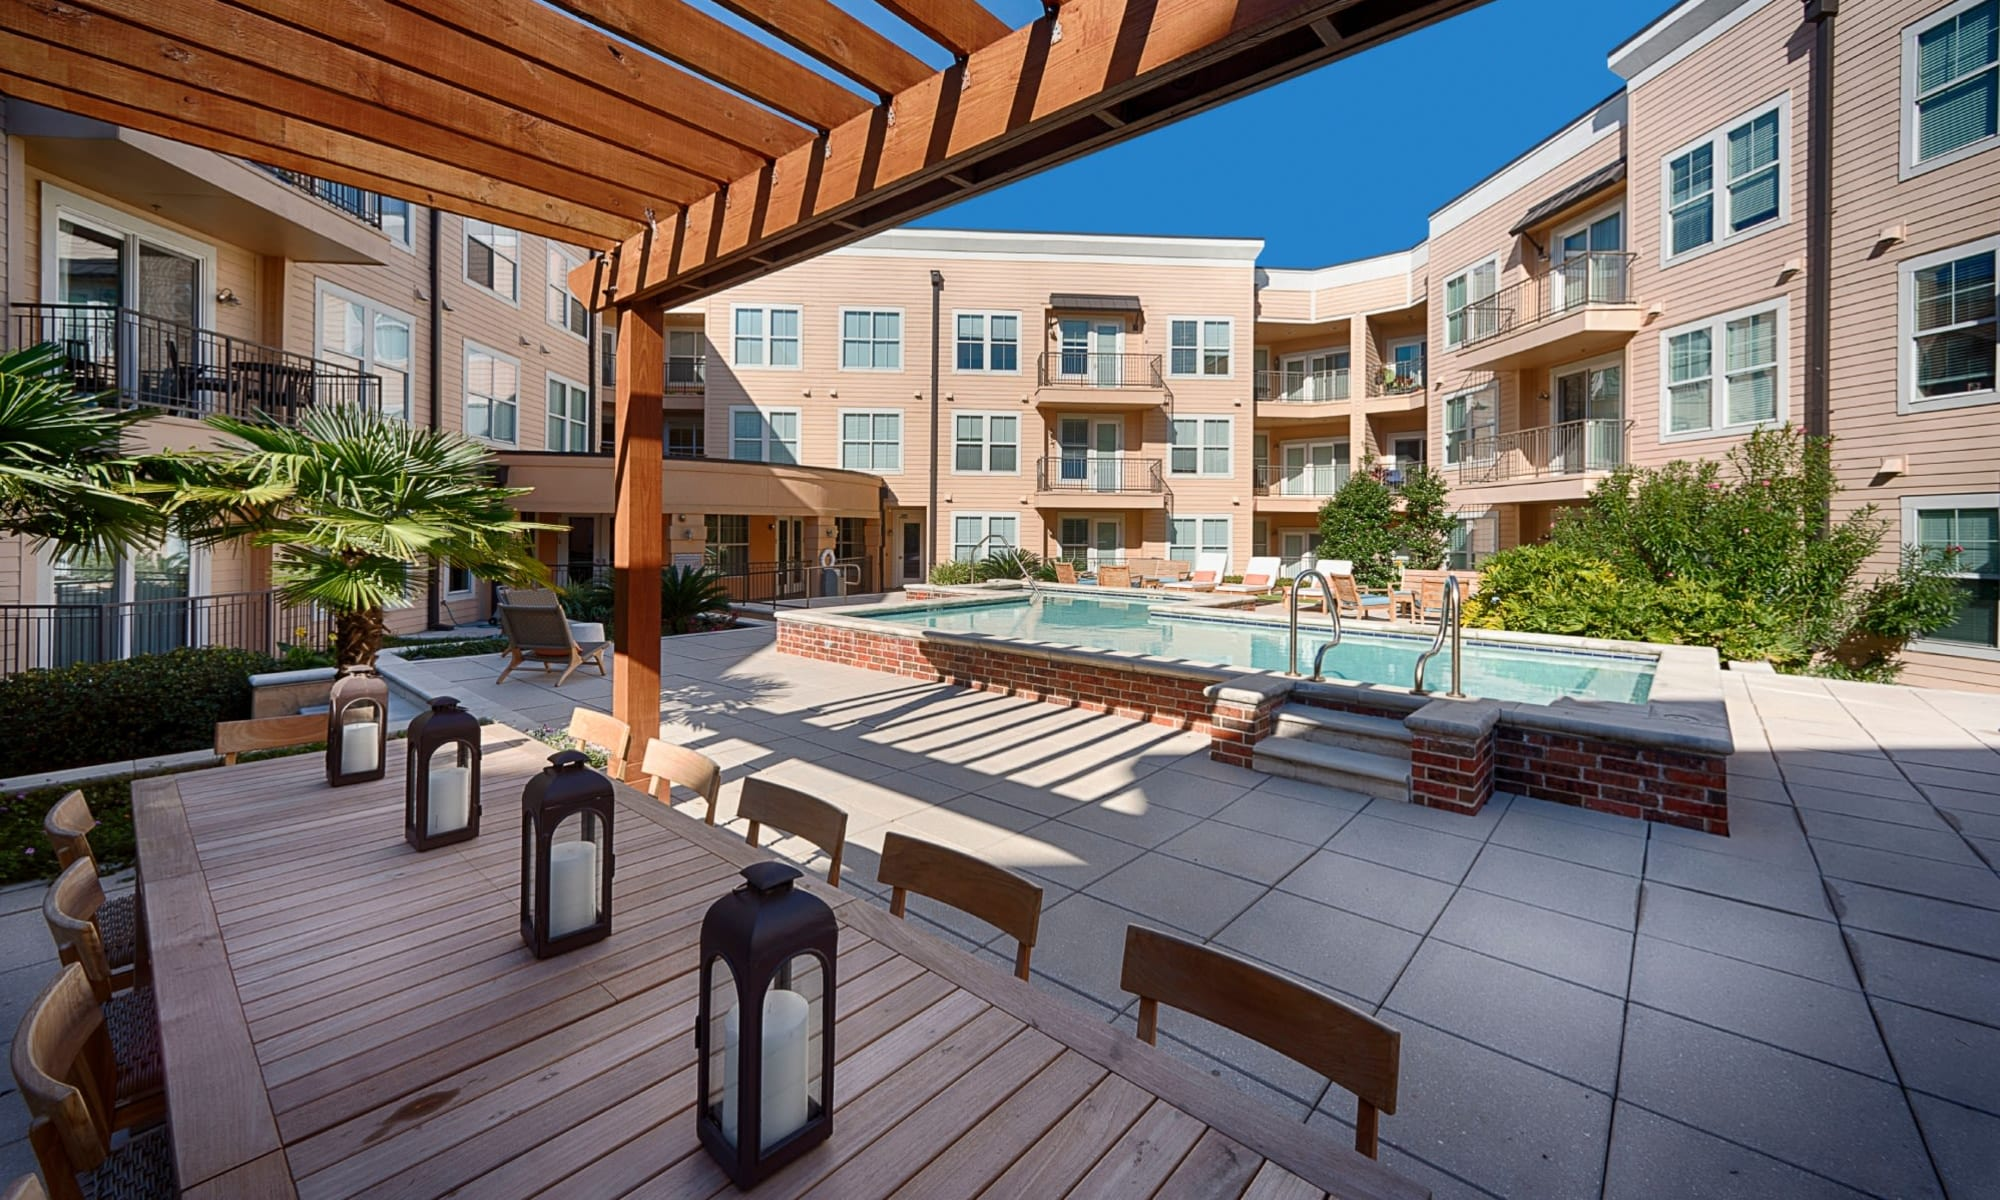 Apartments at The Preserve in New Orleans, Louisiana